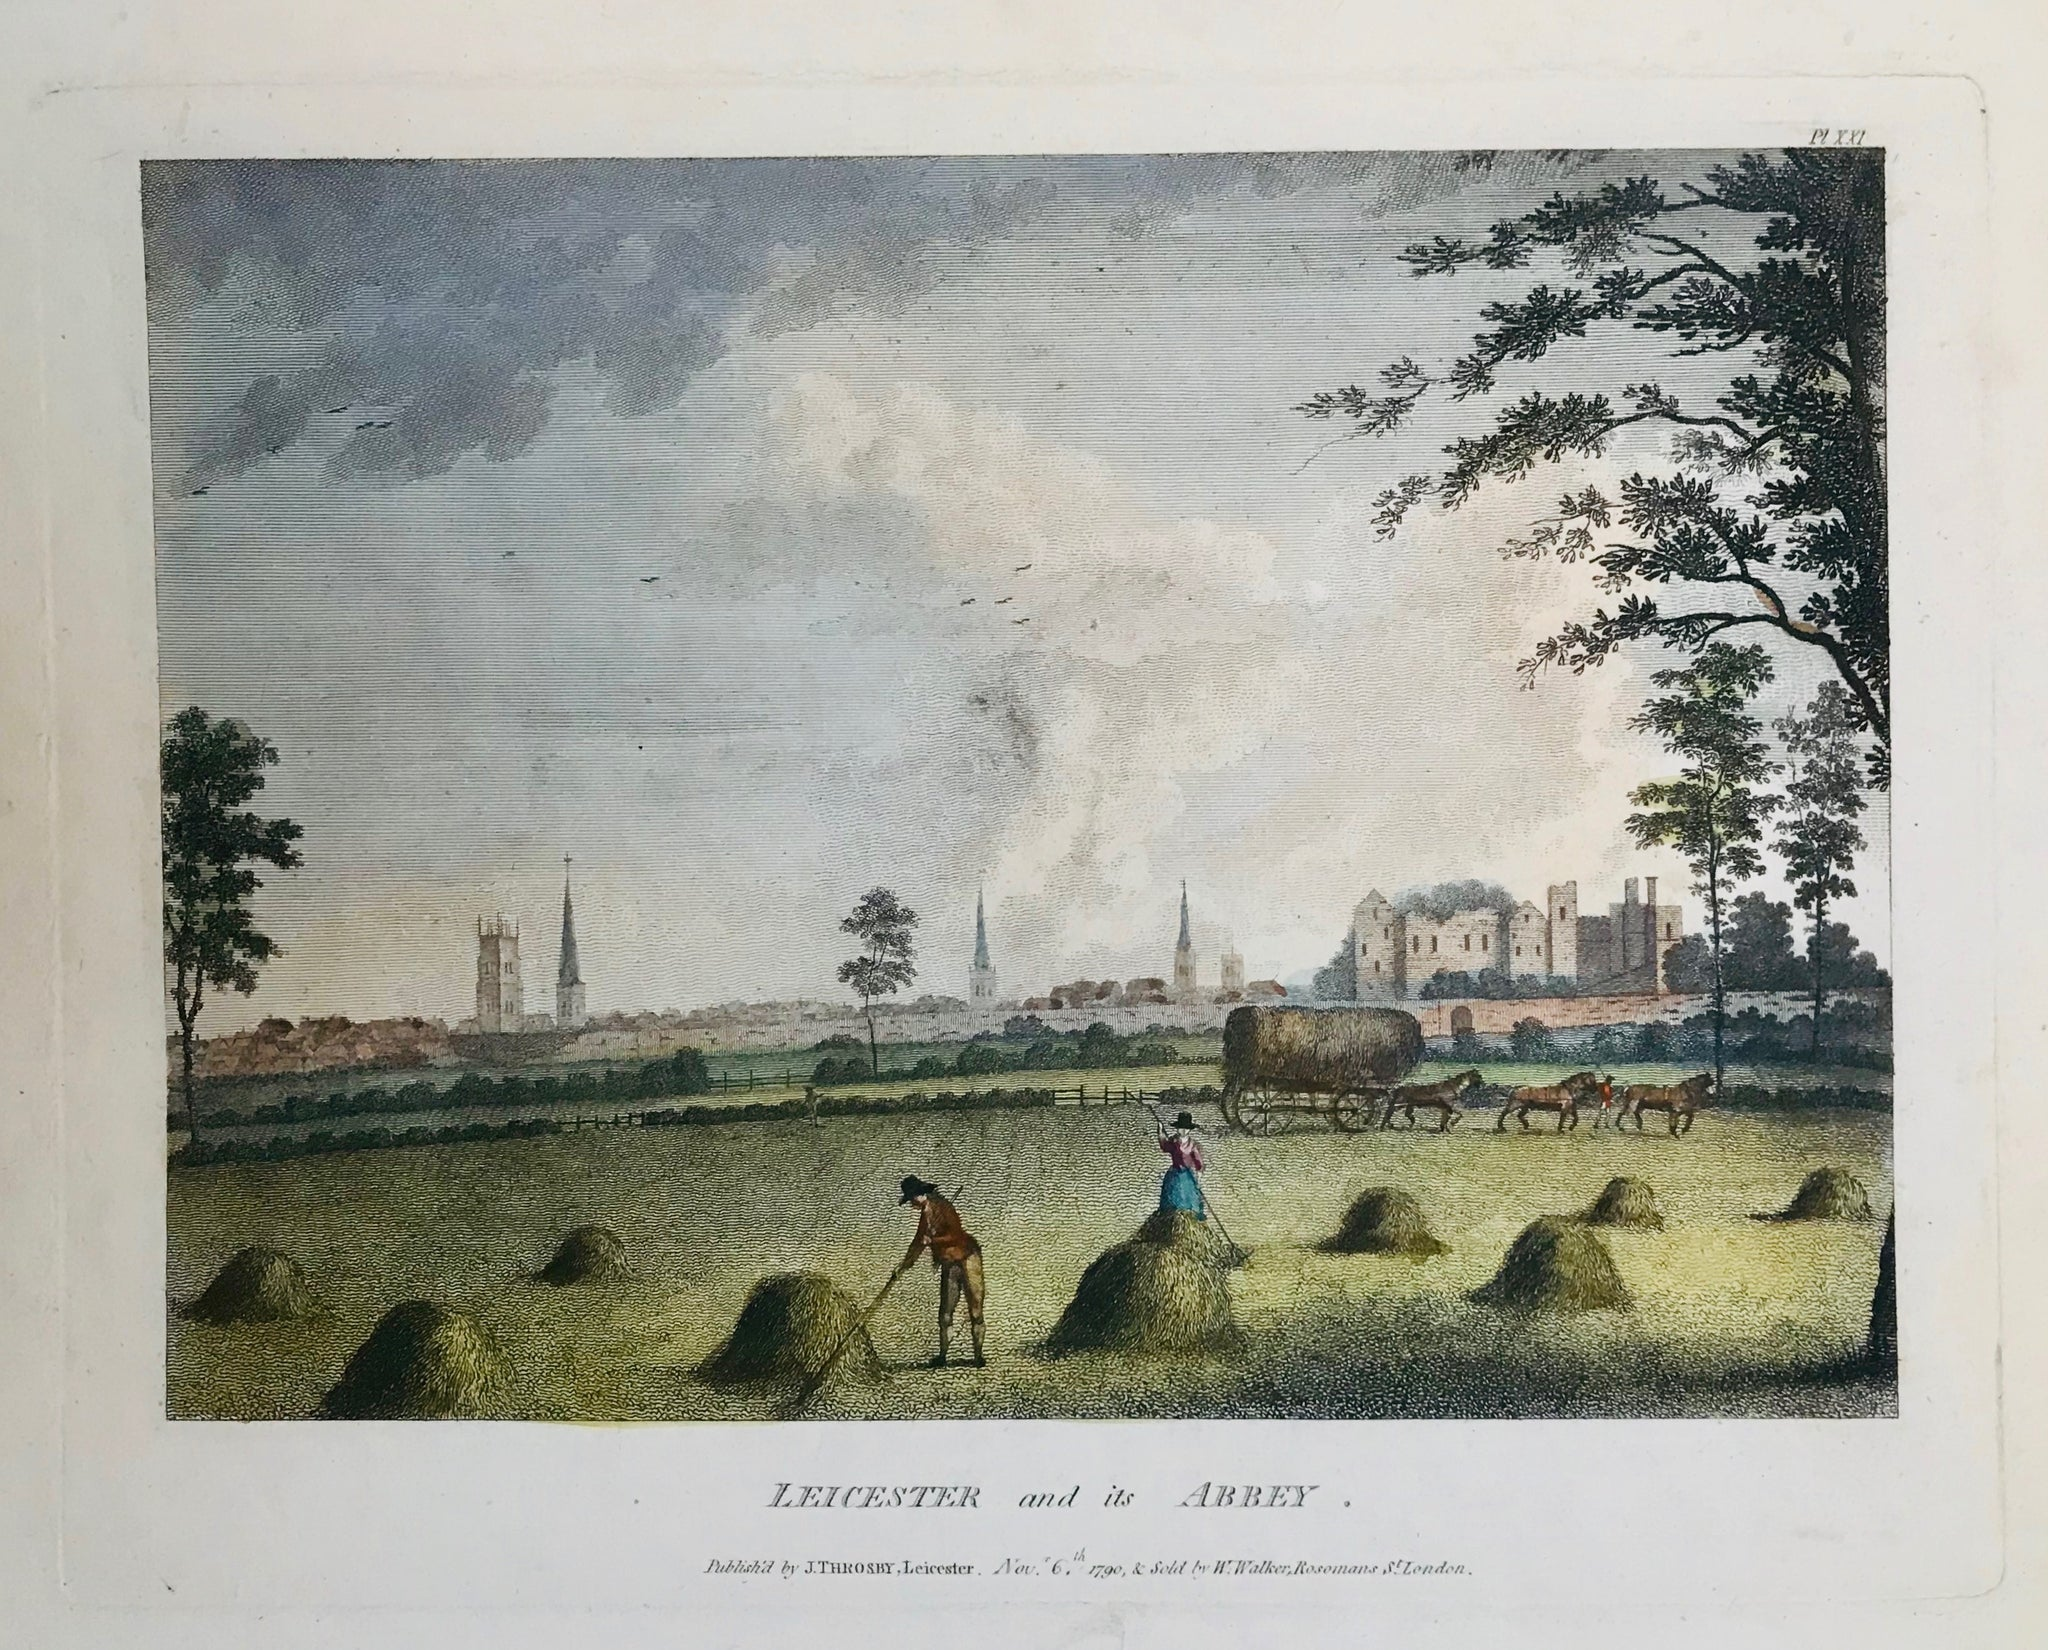 Leicester and its Abbey  Copper engraving published by J. Throsby in Leicester. Dated 1790. Recent hand coloring.